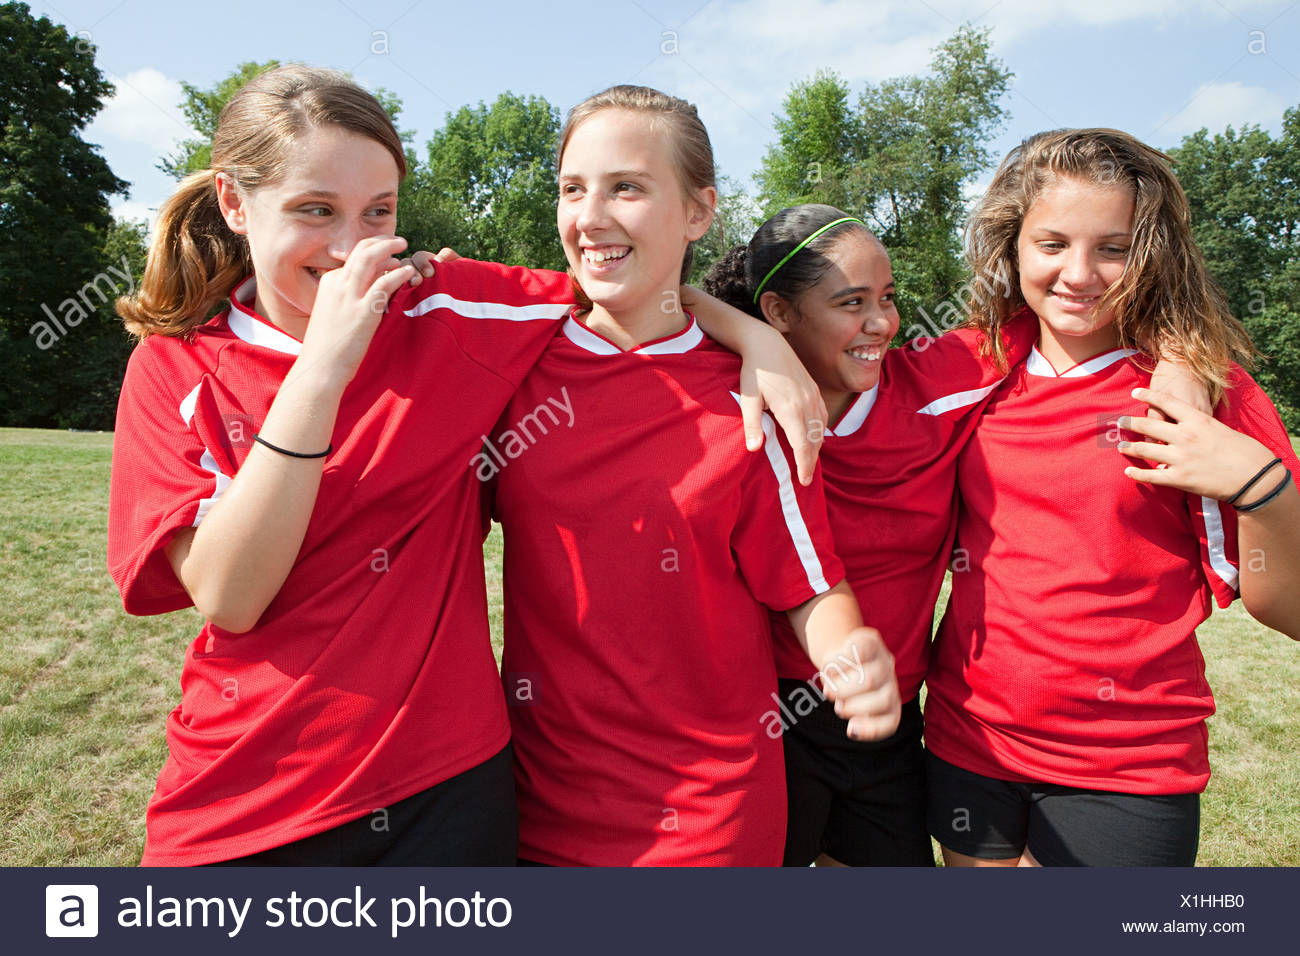 Girl soccer players laughing - Stock Image